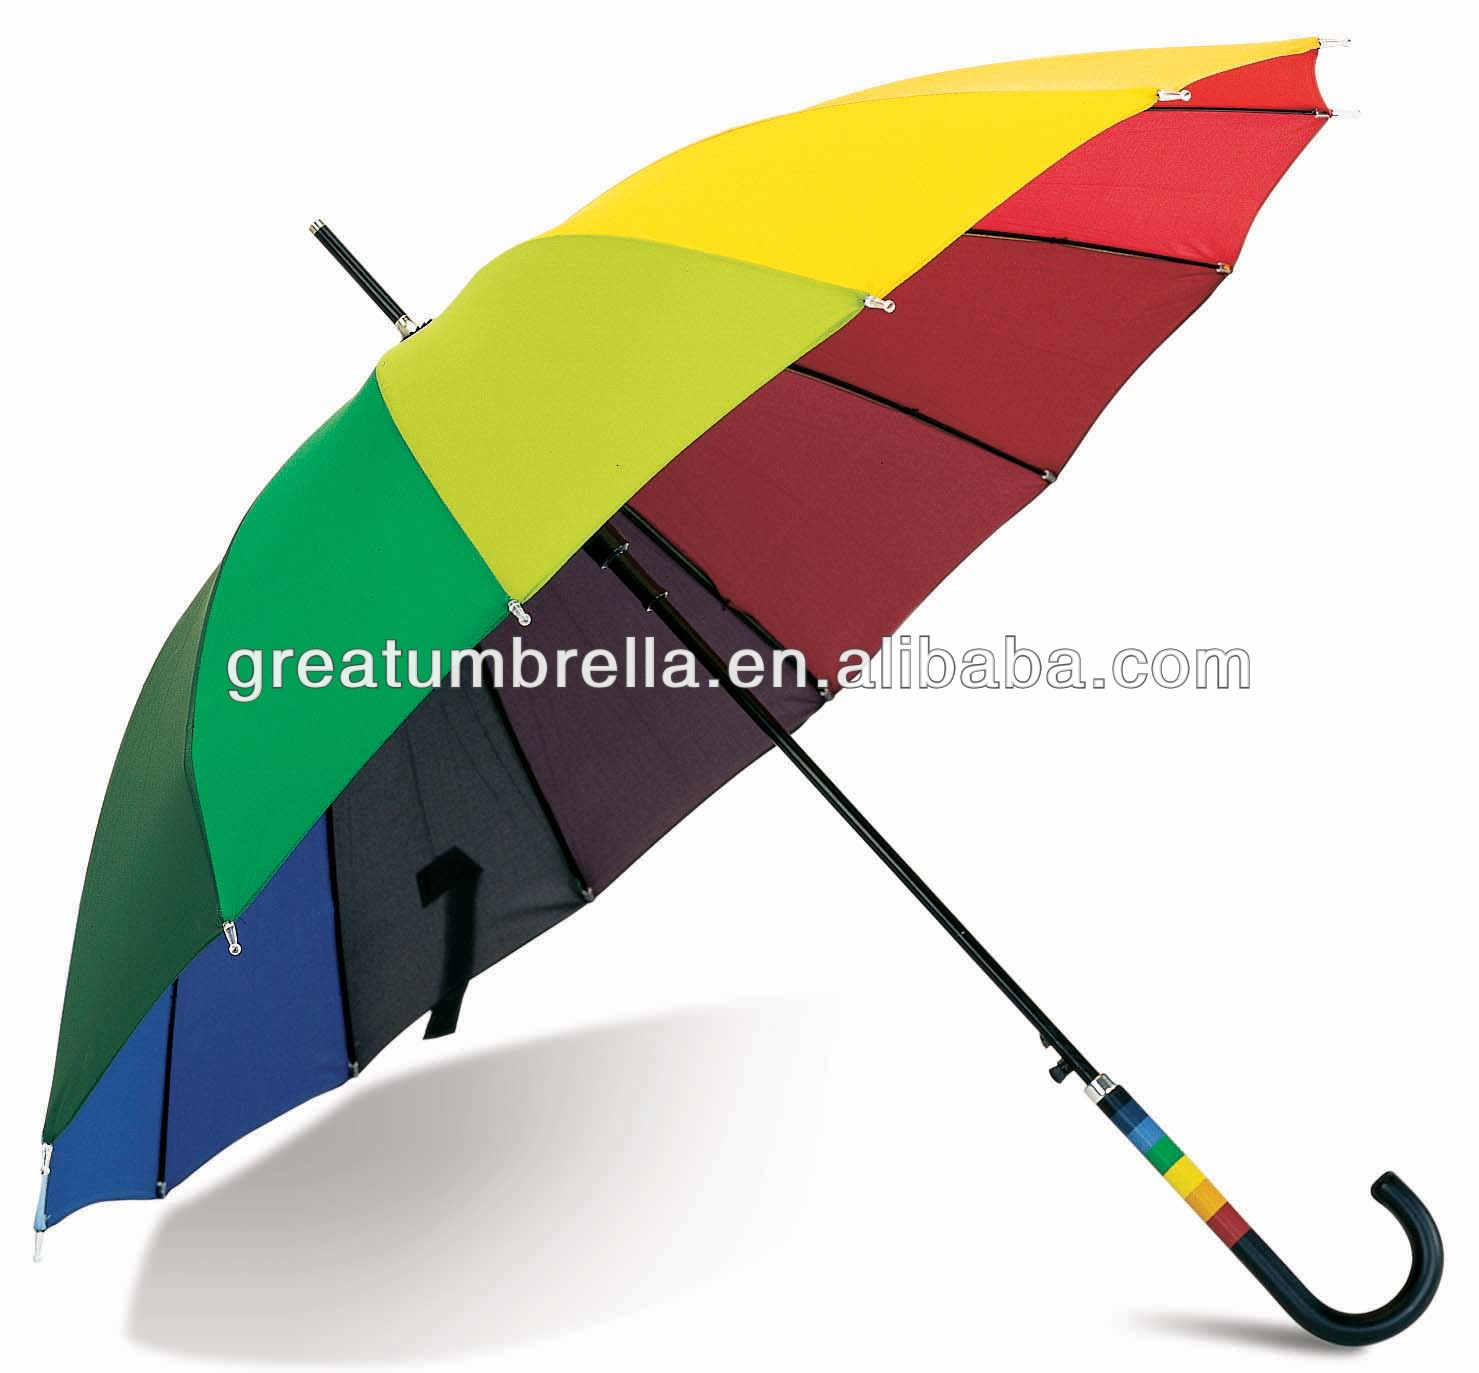 full color printed 16K Color cheap big rainbow umbrella